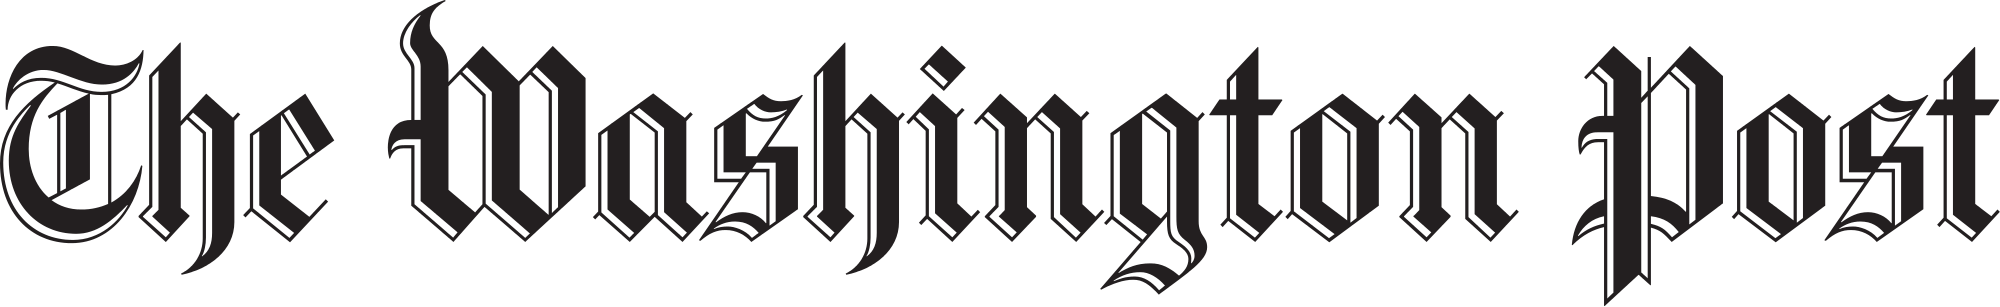 the_logo_of_the_washington_post_newspaper-svg